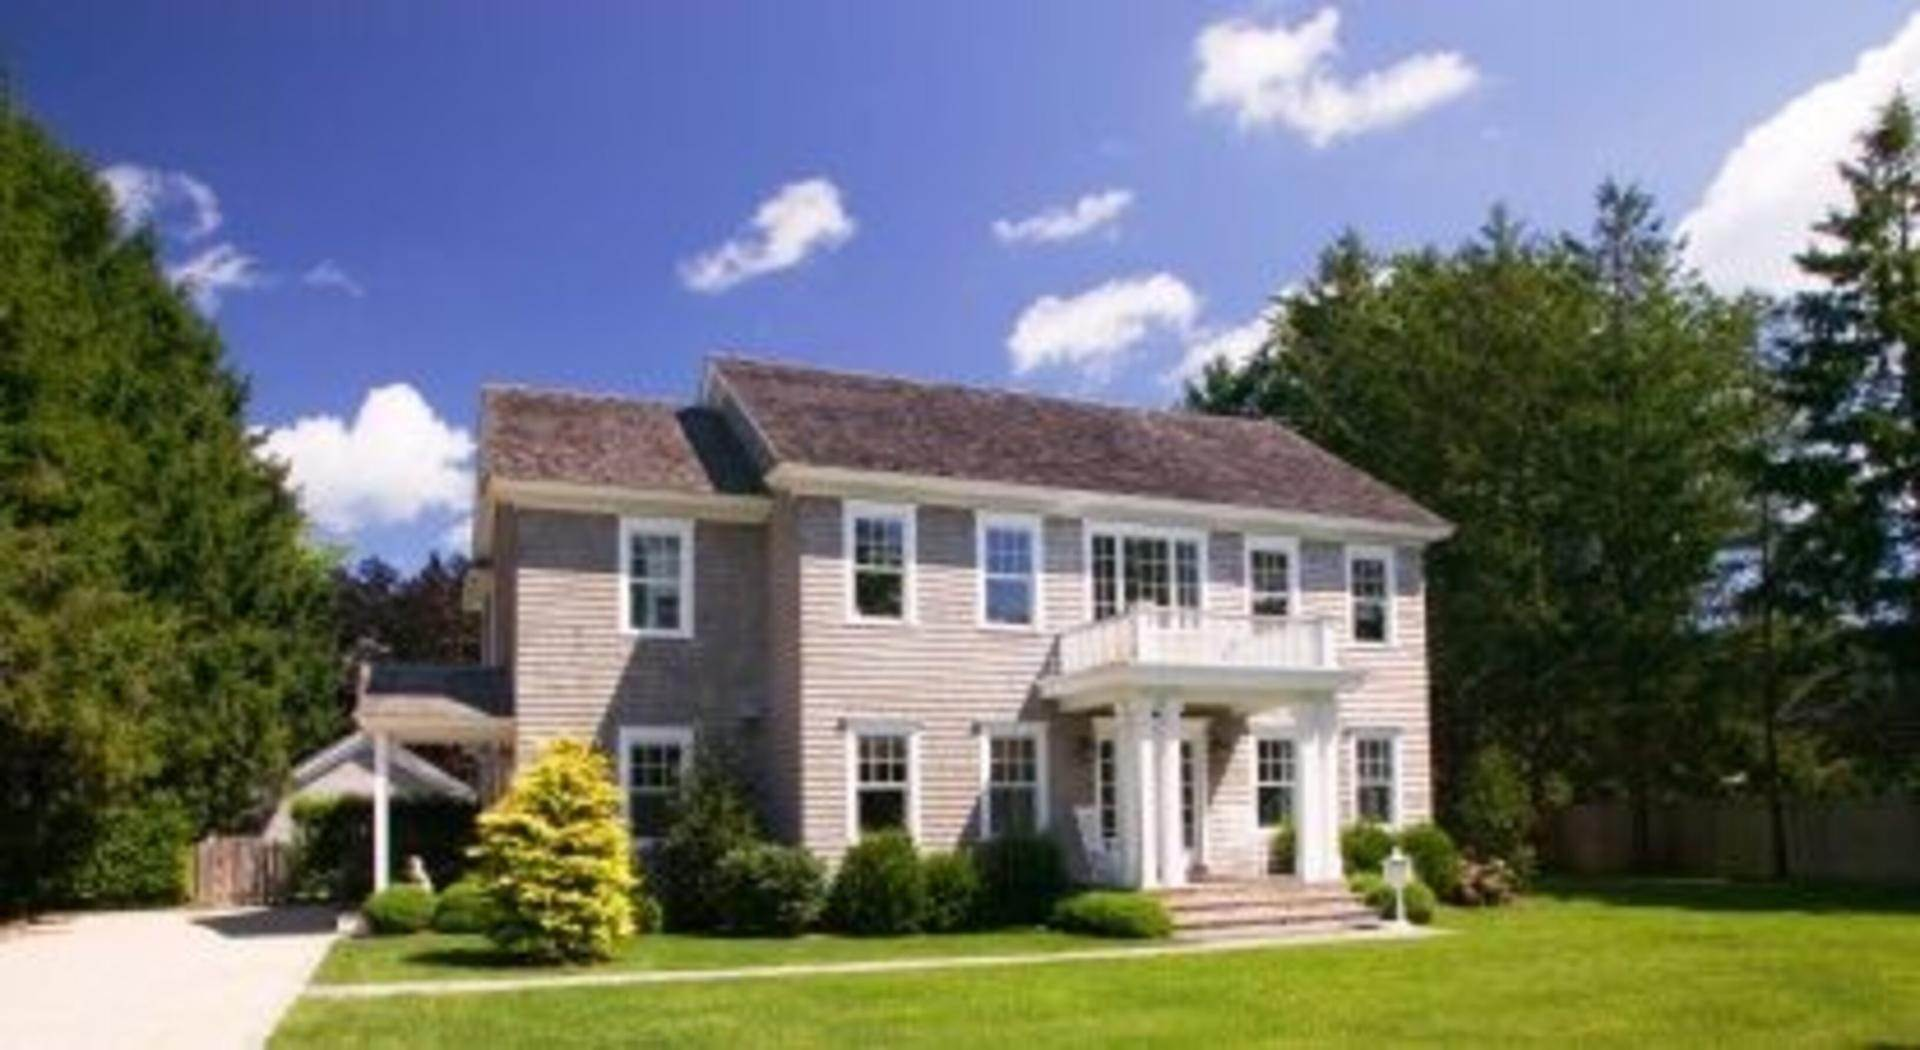 Single Family Home at In The Heart Of Southampton Village Southampton, NY 11968